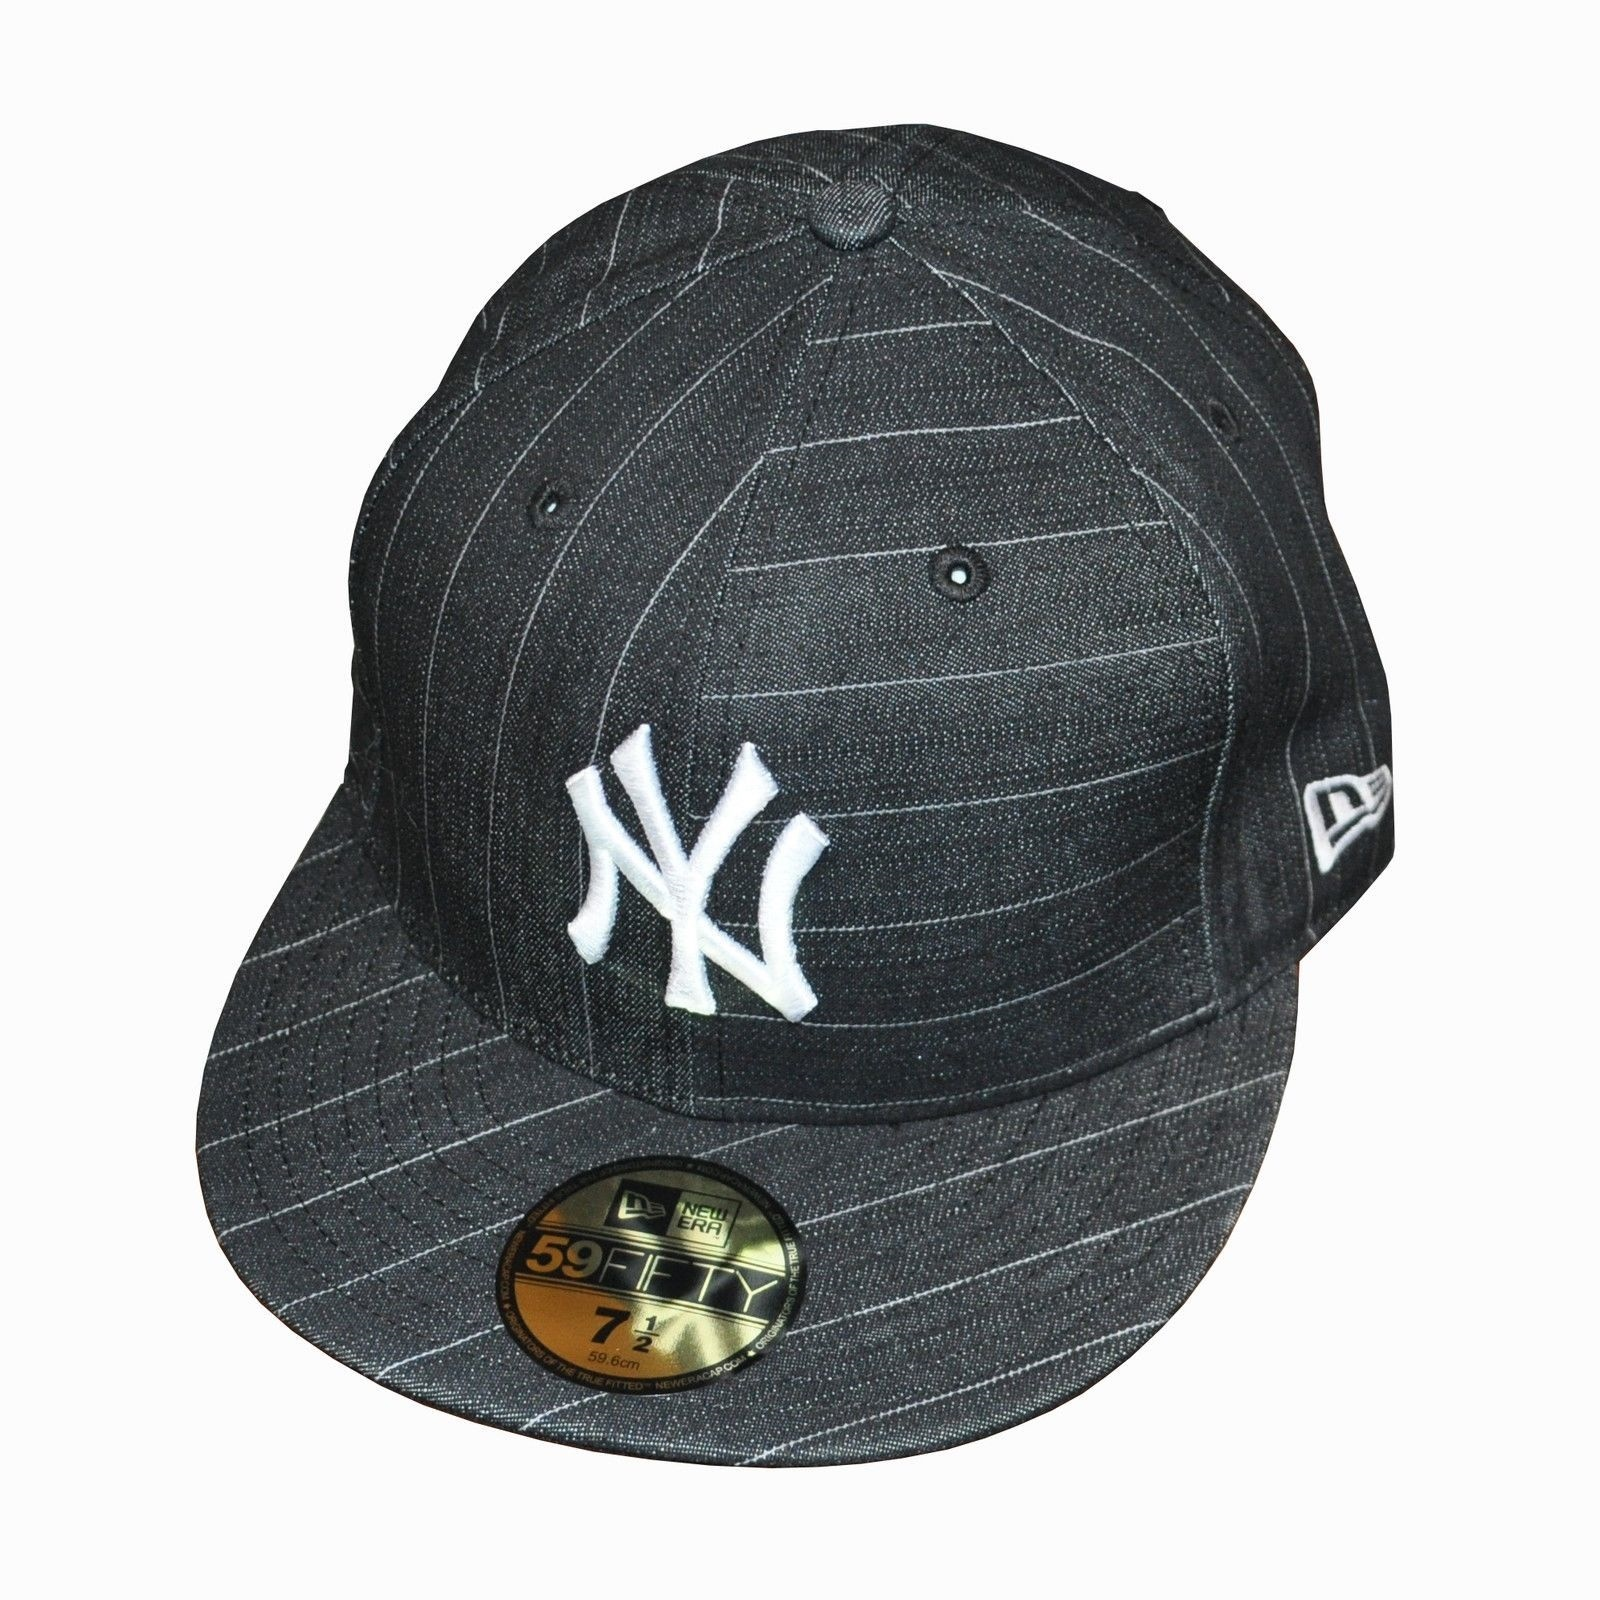 e36ac349b2a Details about New Era 59Fifty NY New York  Pro Tailor  Flat Peak Baseball  Cap 7 1 2